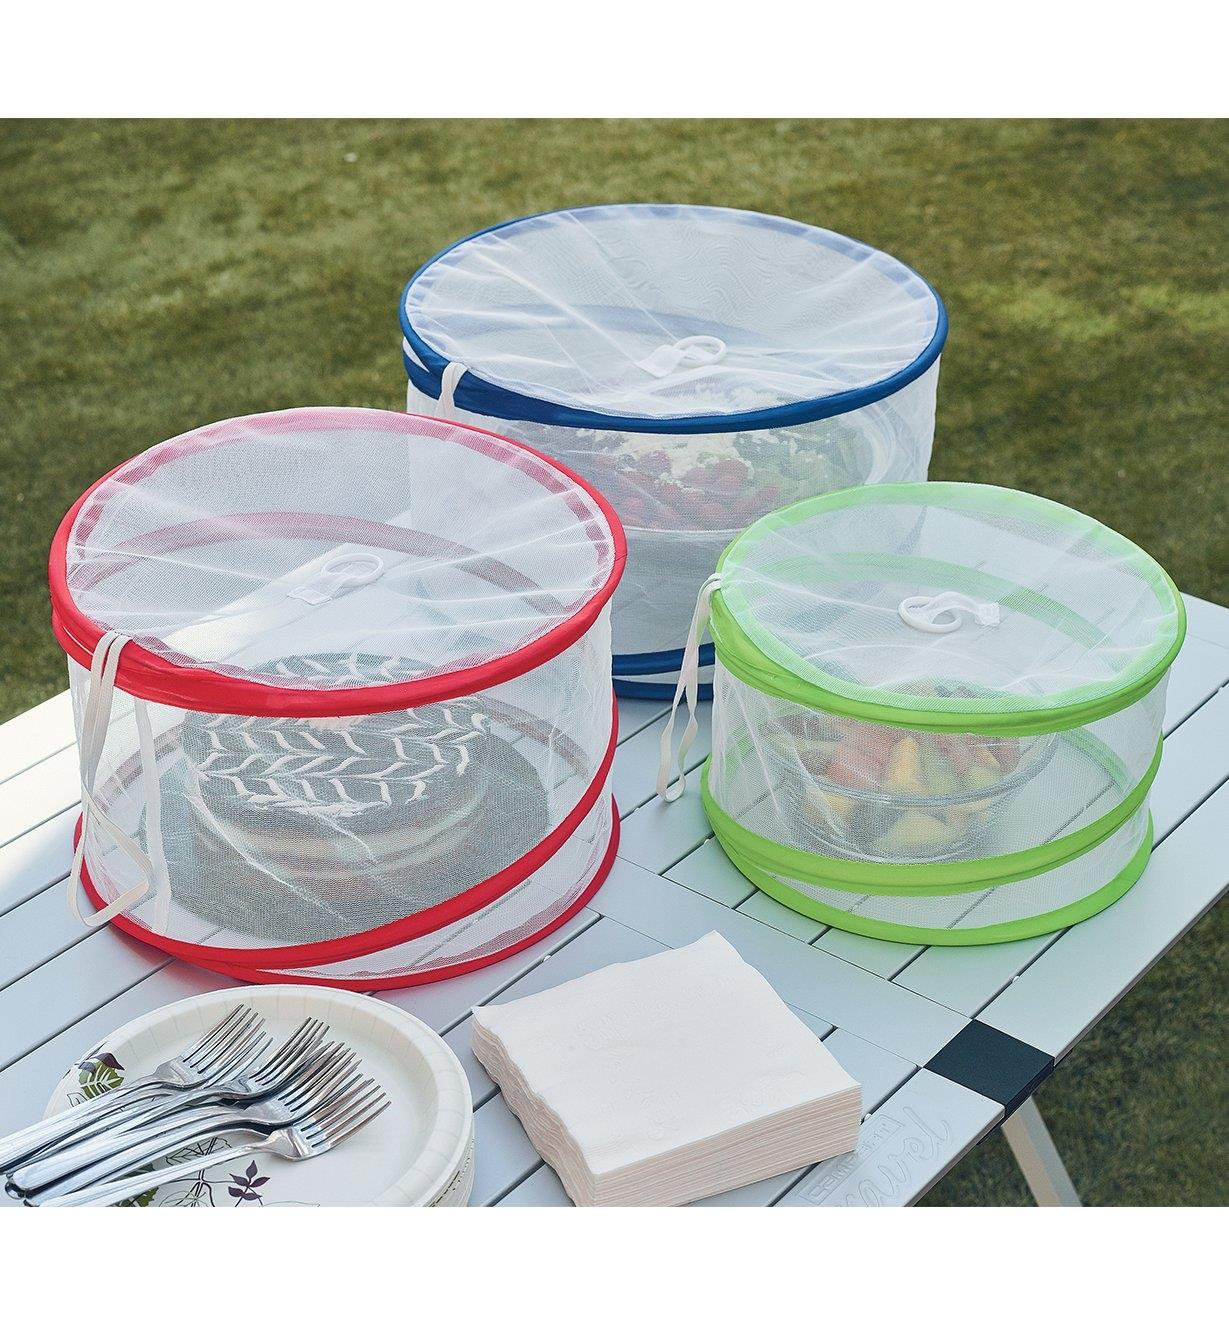 09A0438 - Pop-Up Food Cover Set